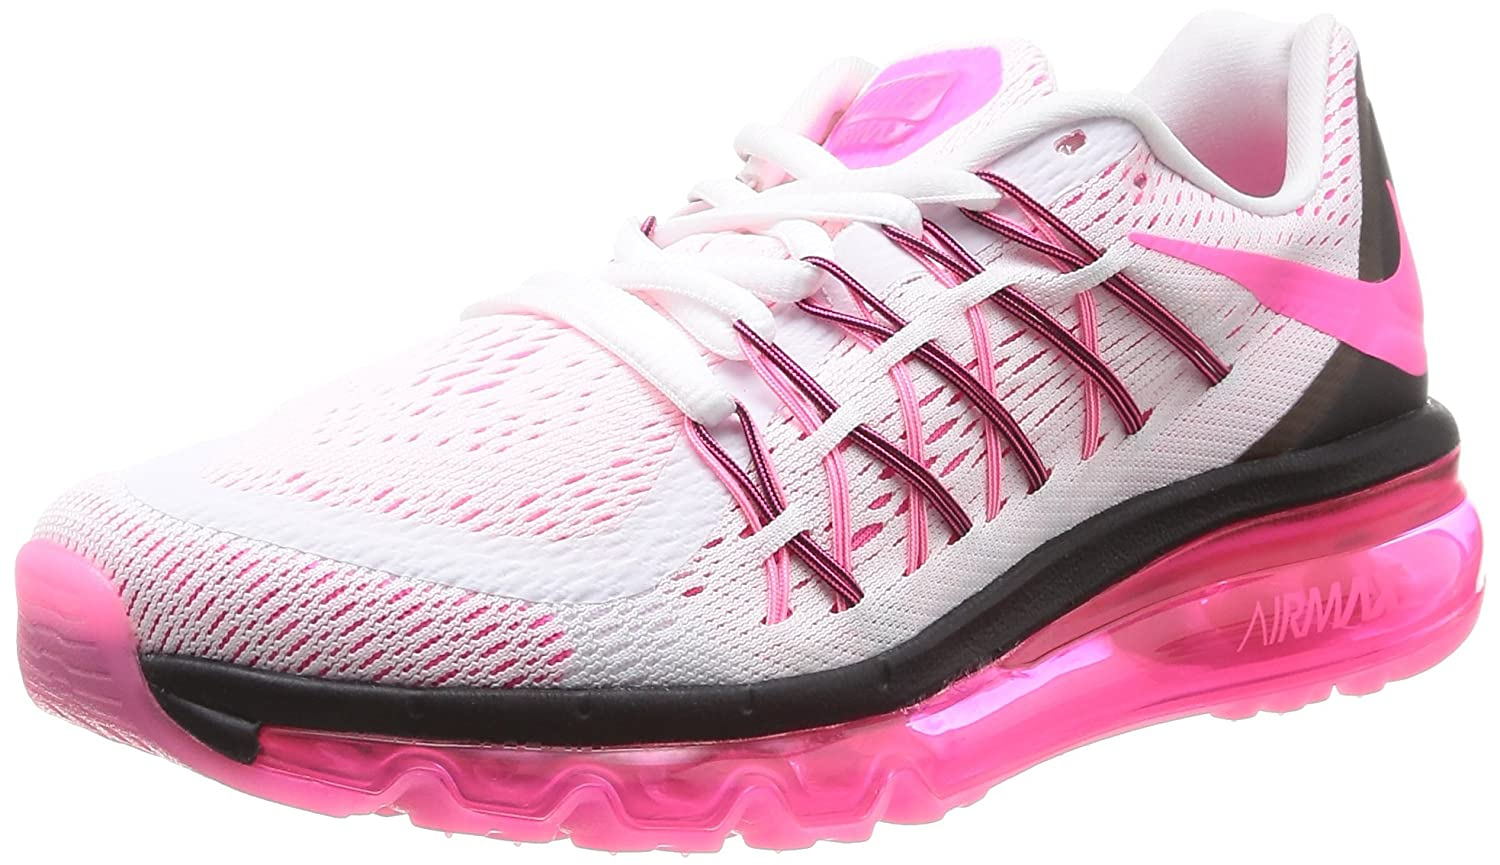 Nike Women s Air Max 2015 White Pink Poe Black Running Shoe 7 Women US